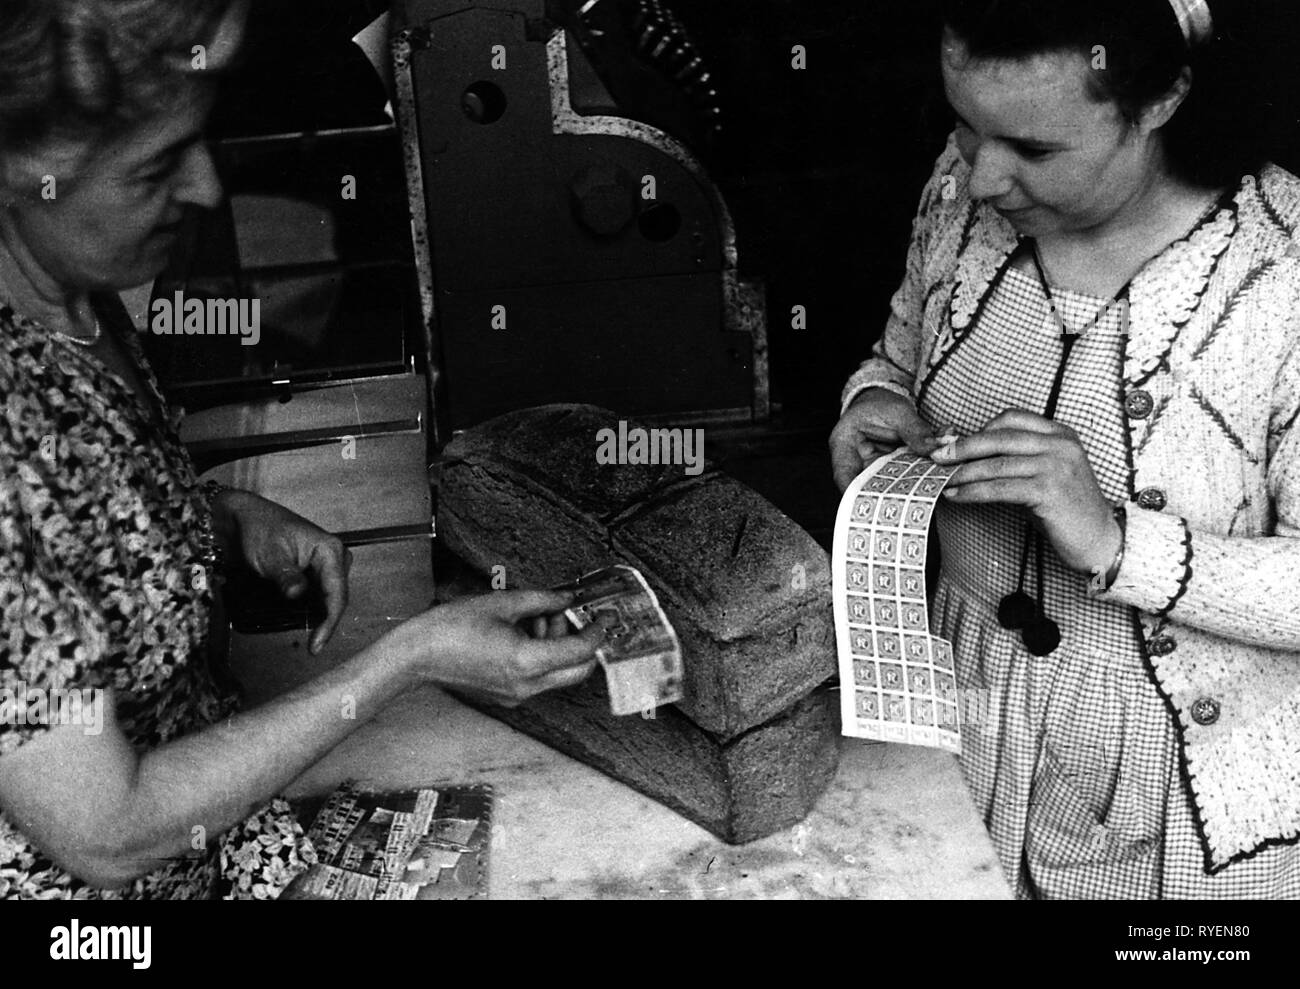 post war period, Germany, poverty, misery, lack of money, customer paying with stamps, Hamburg, 2.7.1947, Additional-Rights-Clearance-Info-Not-Available - Stock Image